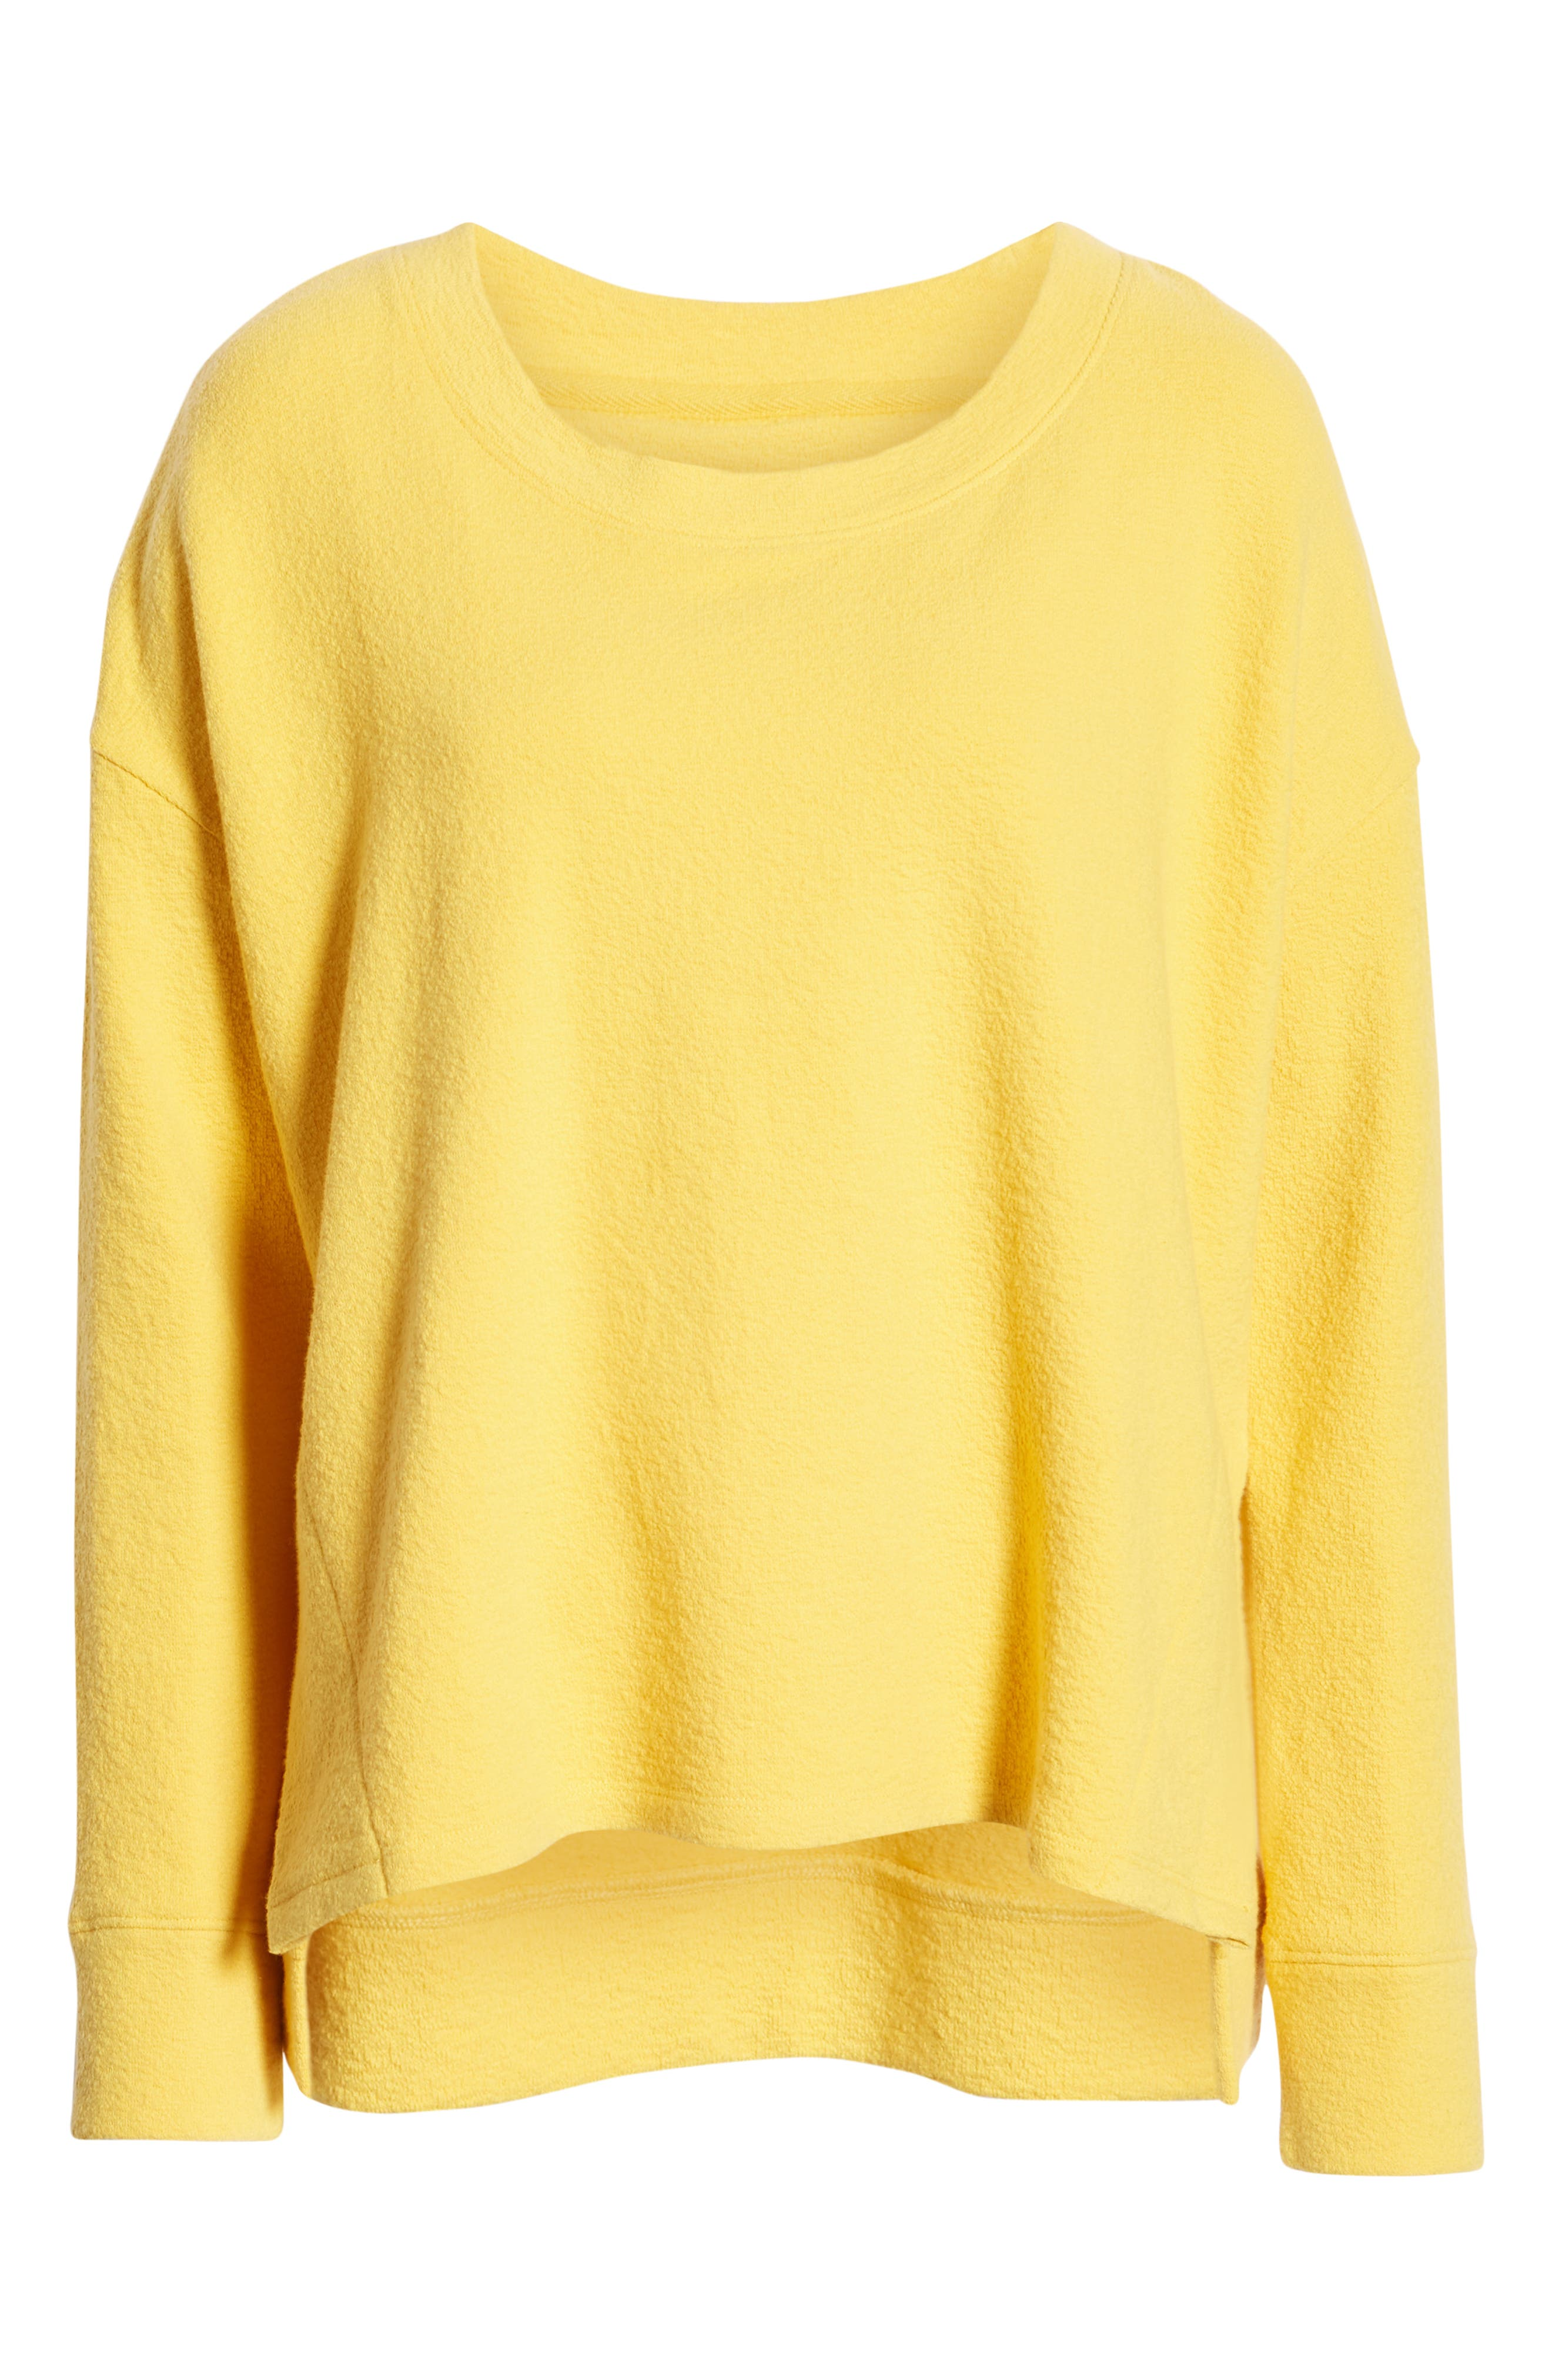 CASLON<SUP>®</SUP>,                             Side Slit Relaxed Sweatshirt,                             Alternate thumbnail 6, color,                             YELLOW WHIP